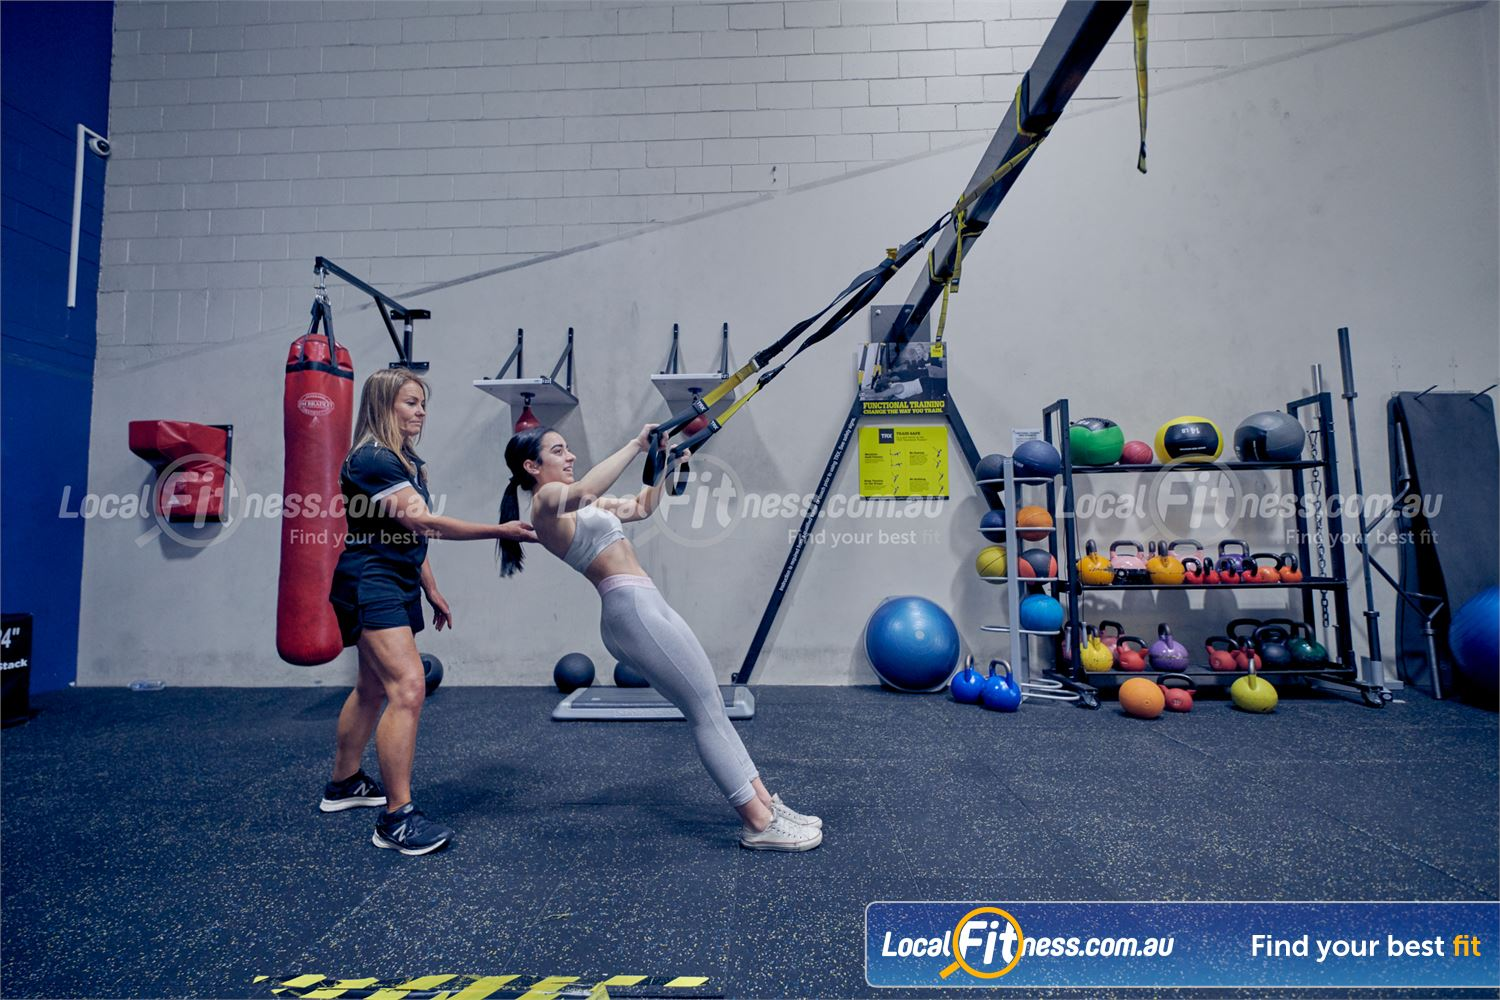 Goodlife Health Clubs Near Springvale South Challenge your core and stability with TRX training in Dingley.